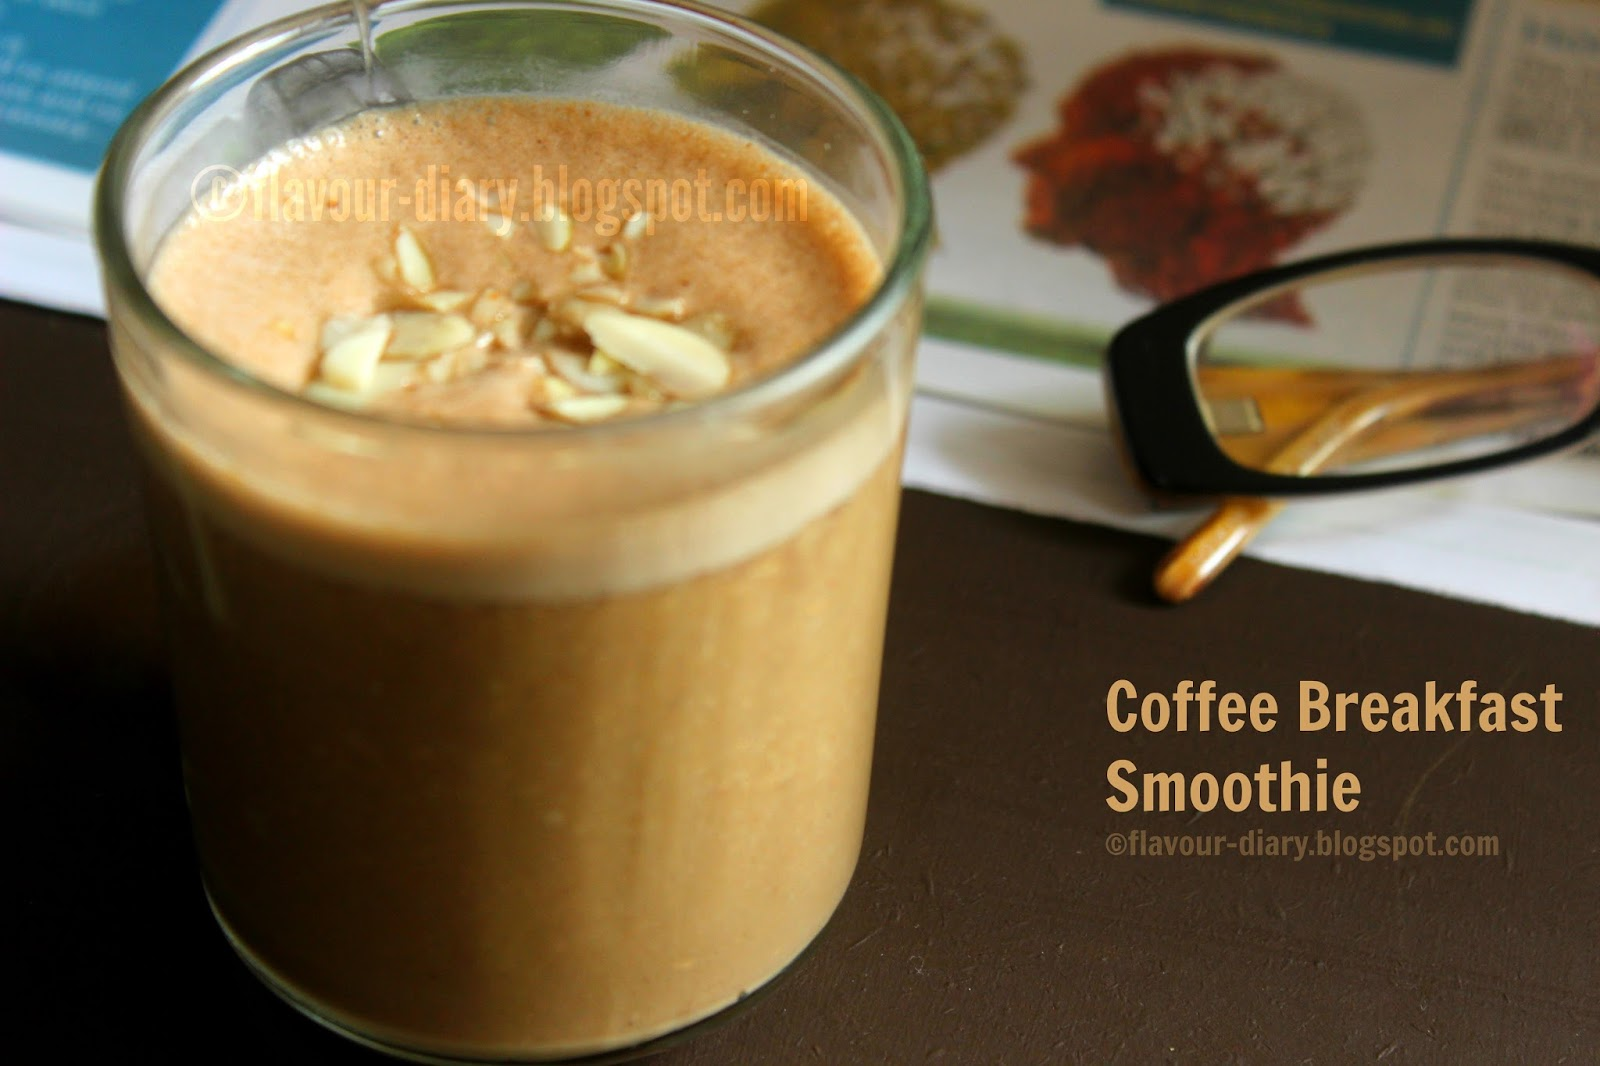 Coffee Breakfast Smoothie Recipe